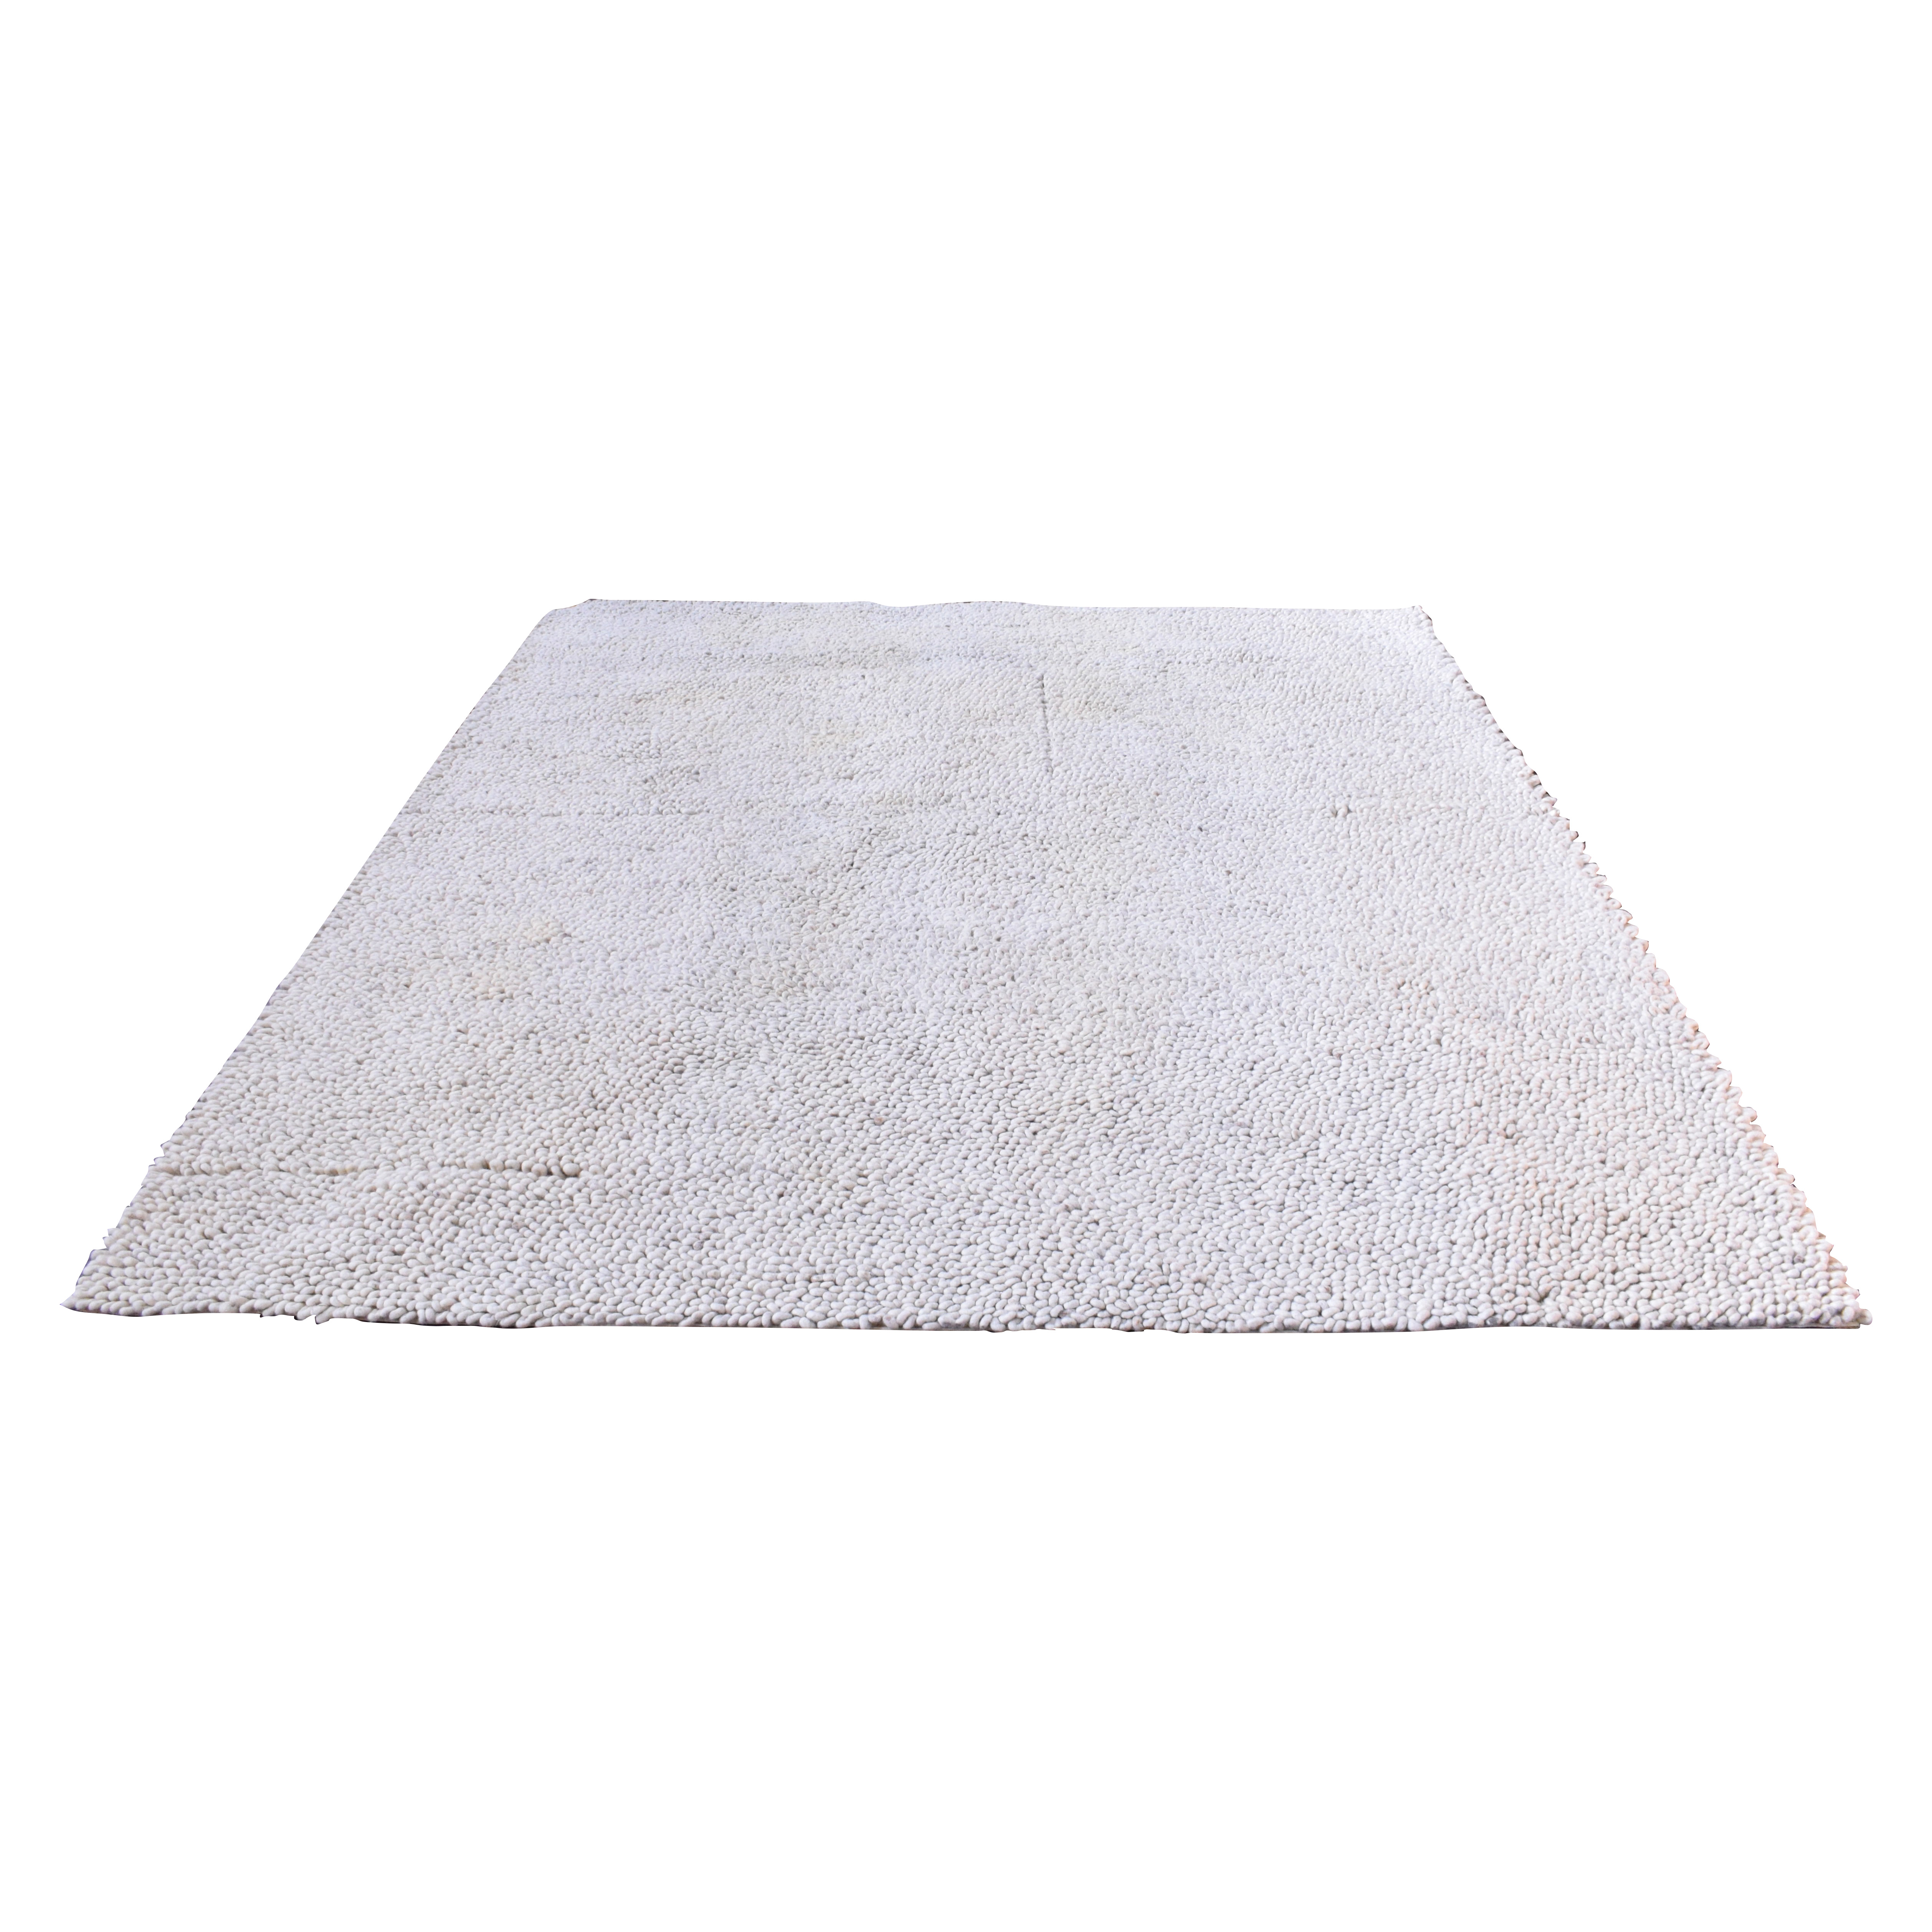 buy Moura Starr Area Rug Moura Starr Rugs